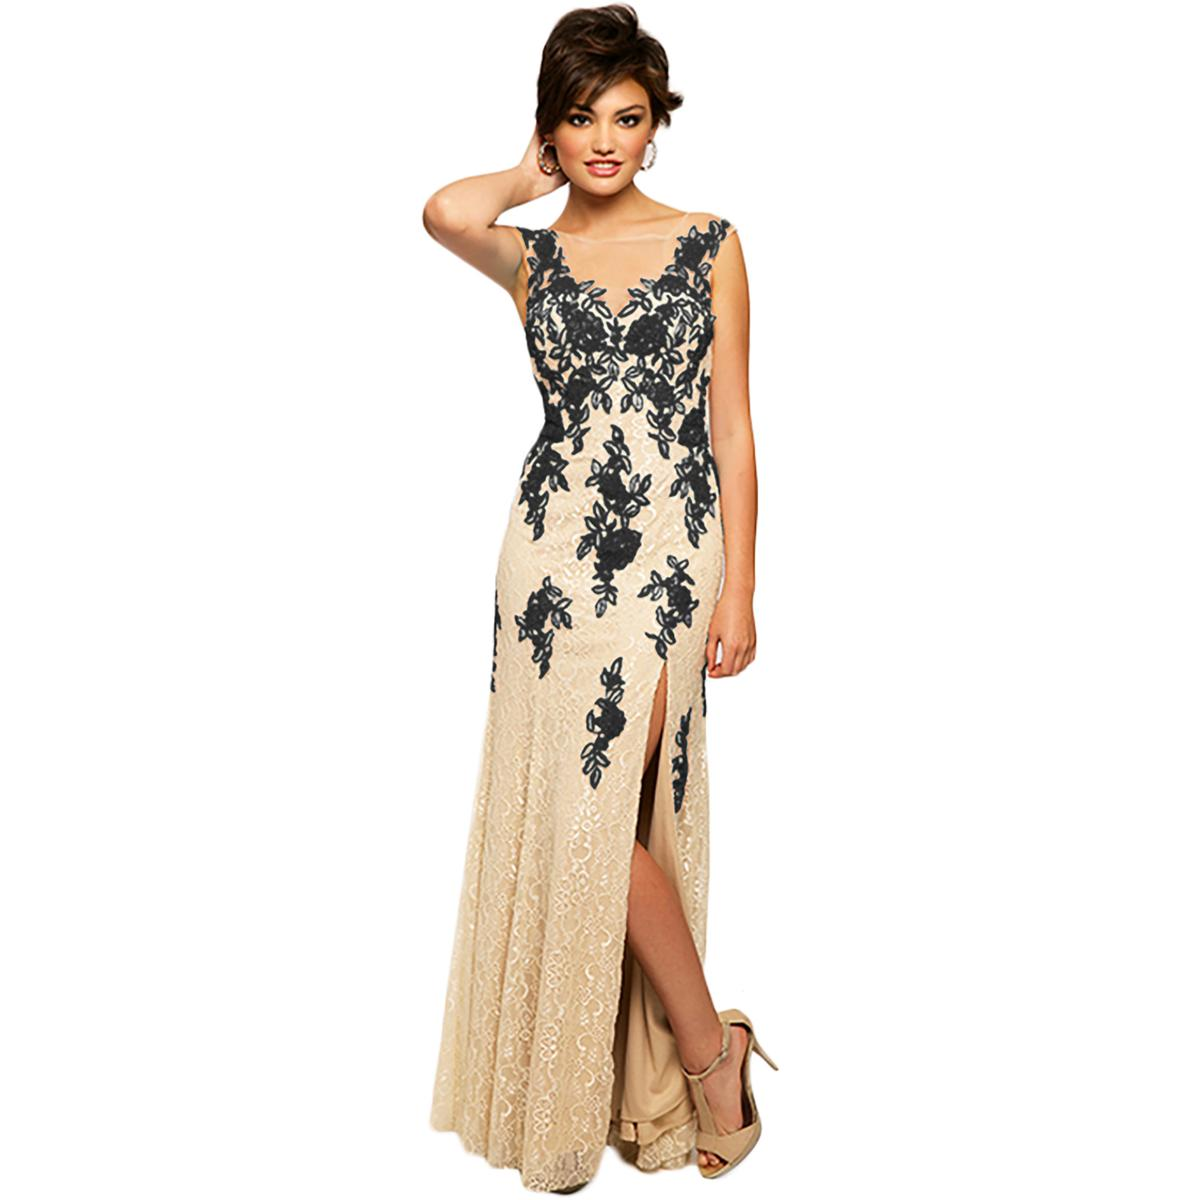 JVN by Jovani Womens Lace Applique Prom Formal Dress Gown BHFO 3524 ...